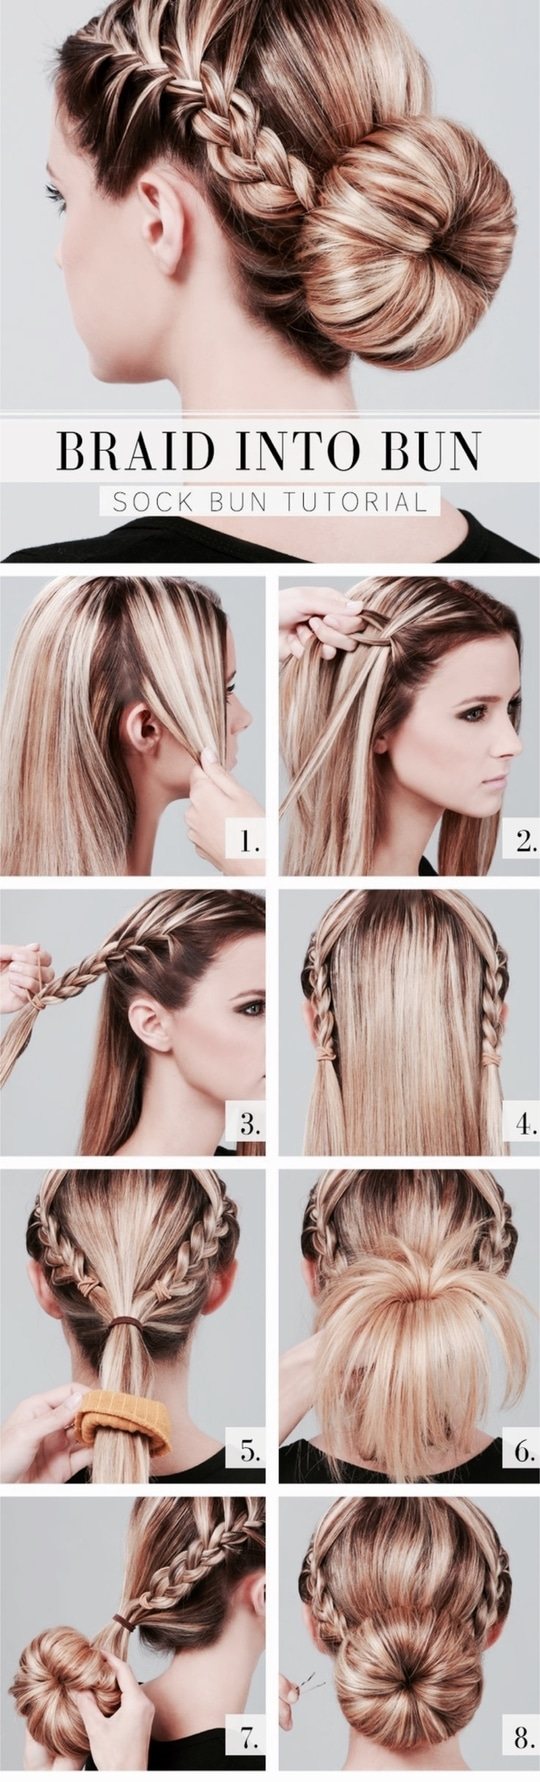 Another #hairstyle for party or office, such n #easy hairdo. Please try and let me know how it looks. I am planning to do some hairstyle videos. Please suggest me some hairdos you guys want to me to do.  #summerhairstyles #youtuber